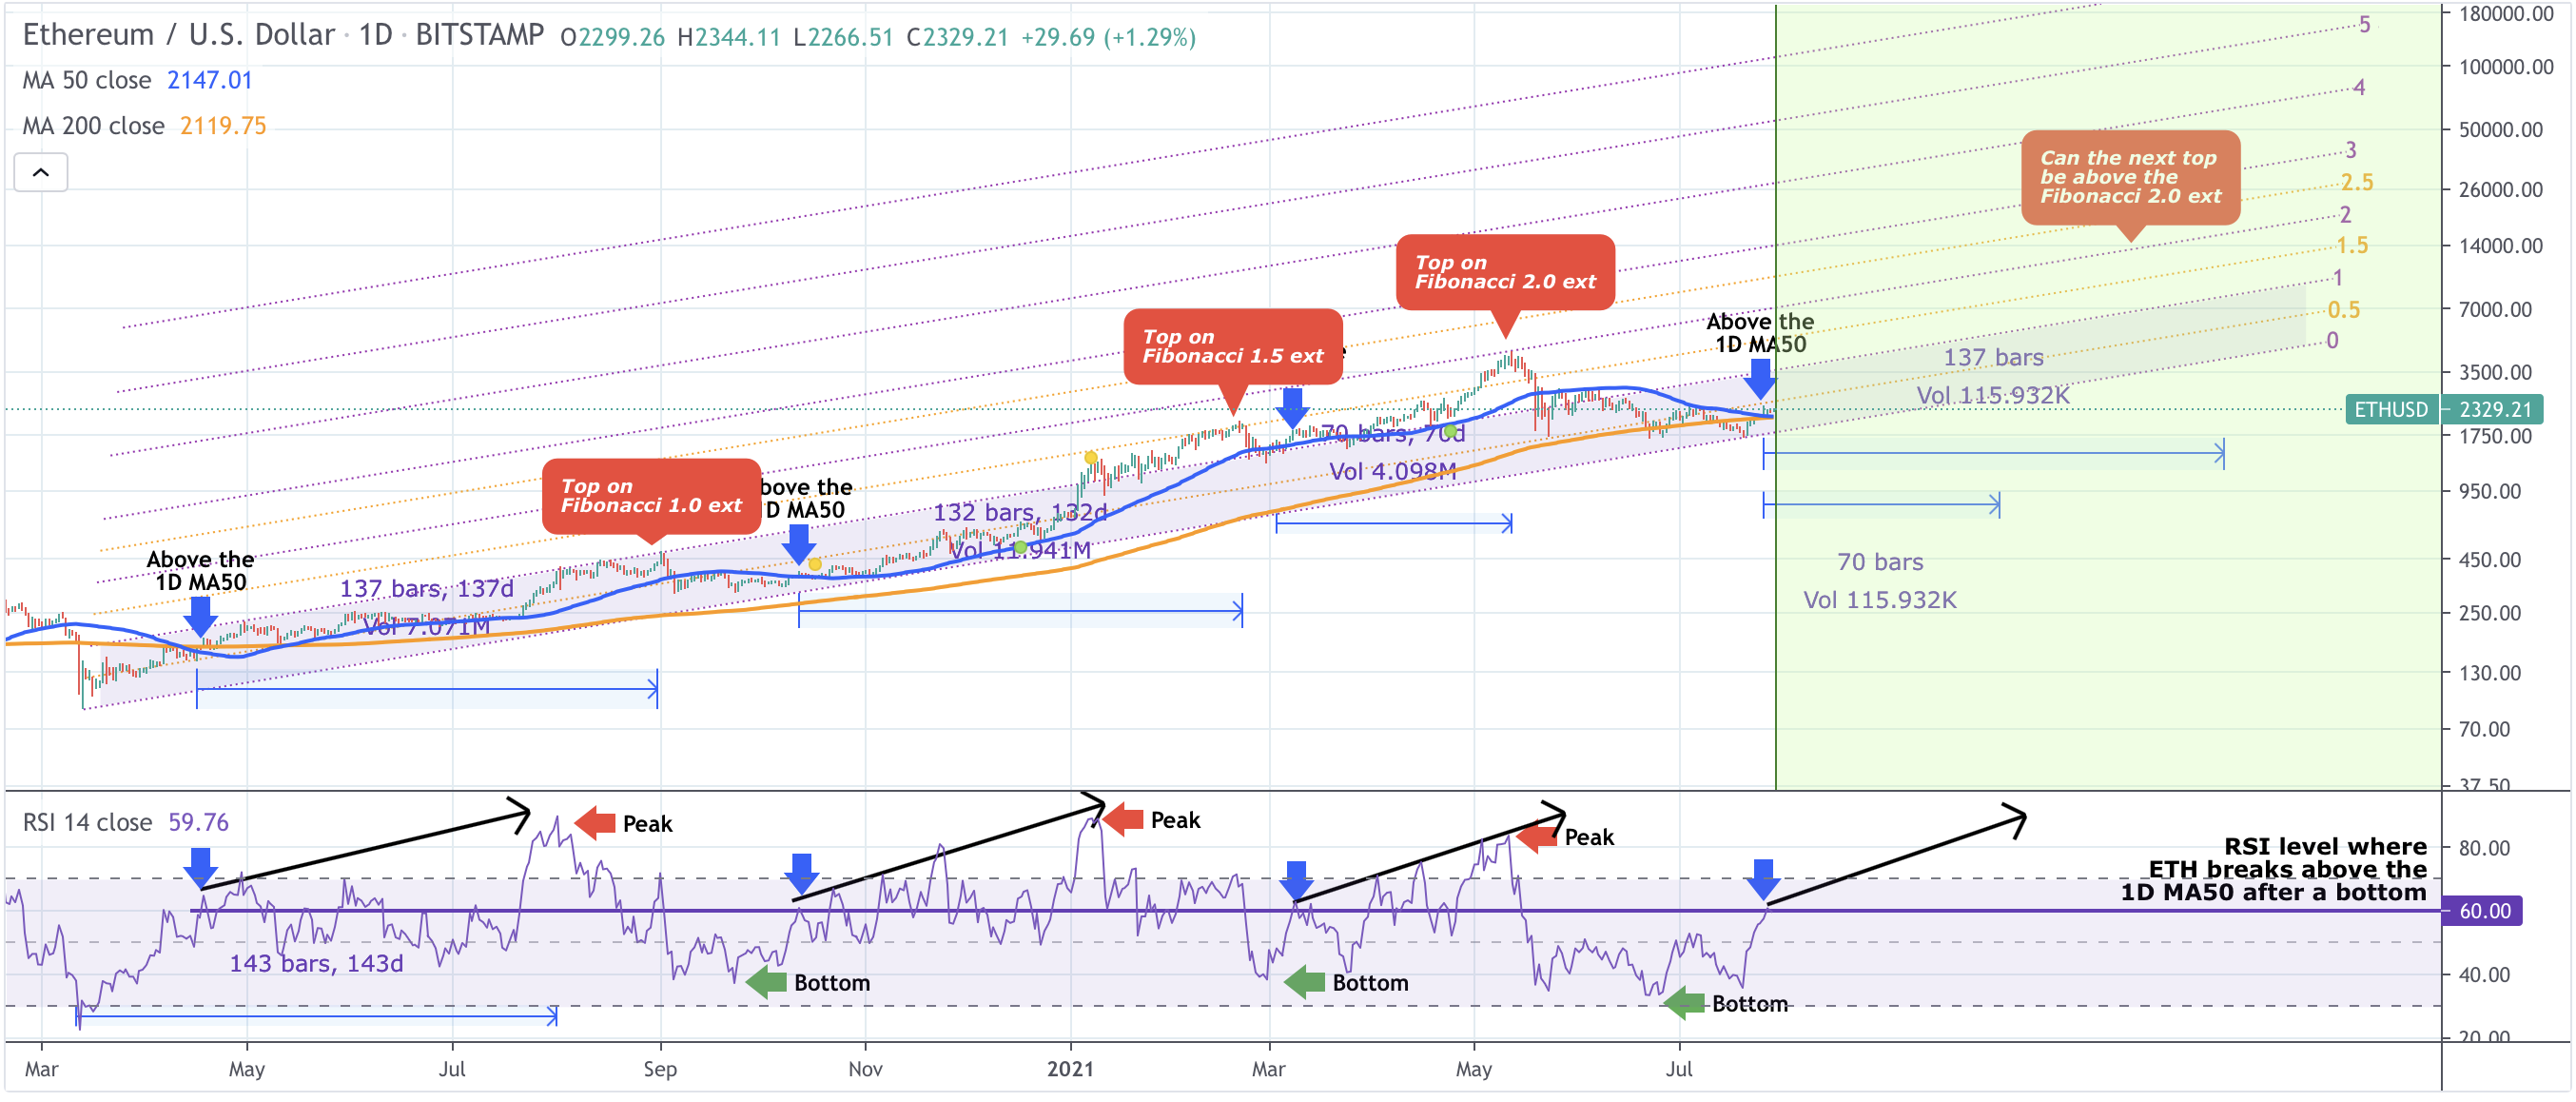 Ethereum price can hit K if the March 2020 chart fractal holds